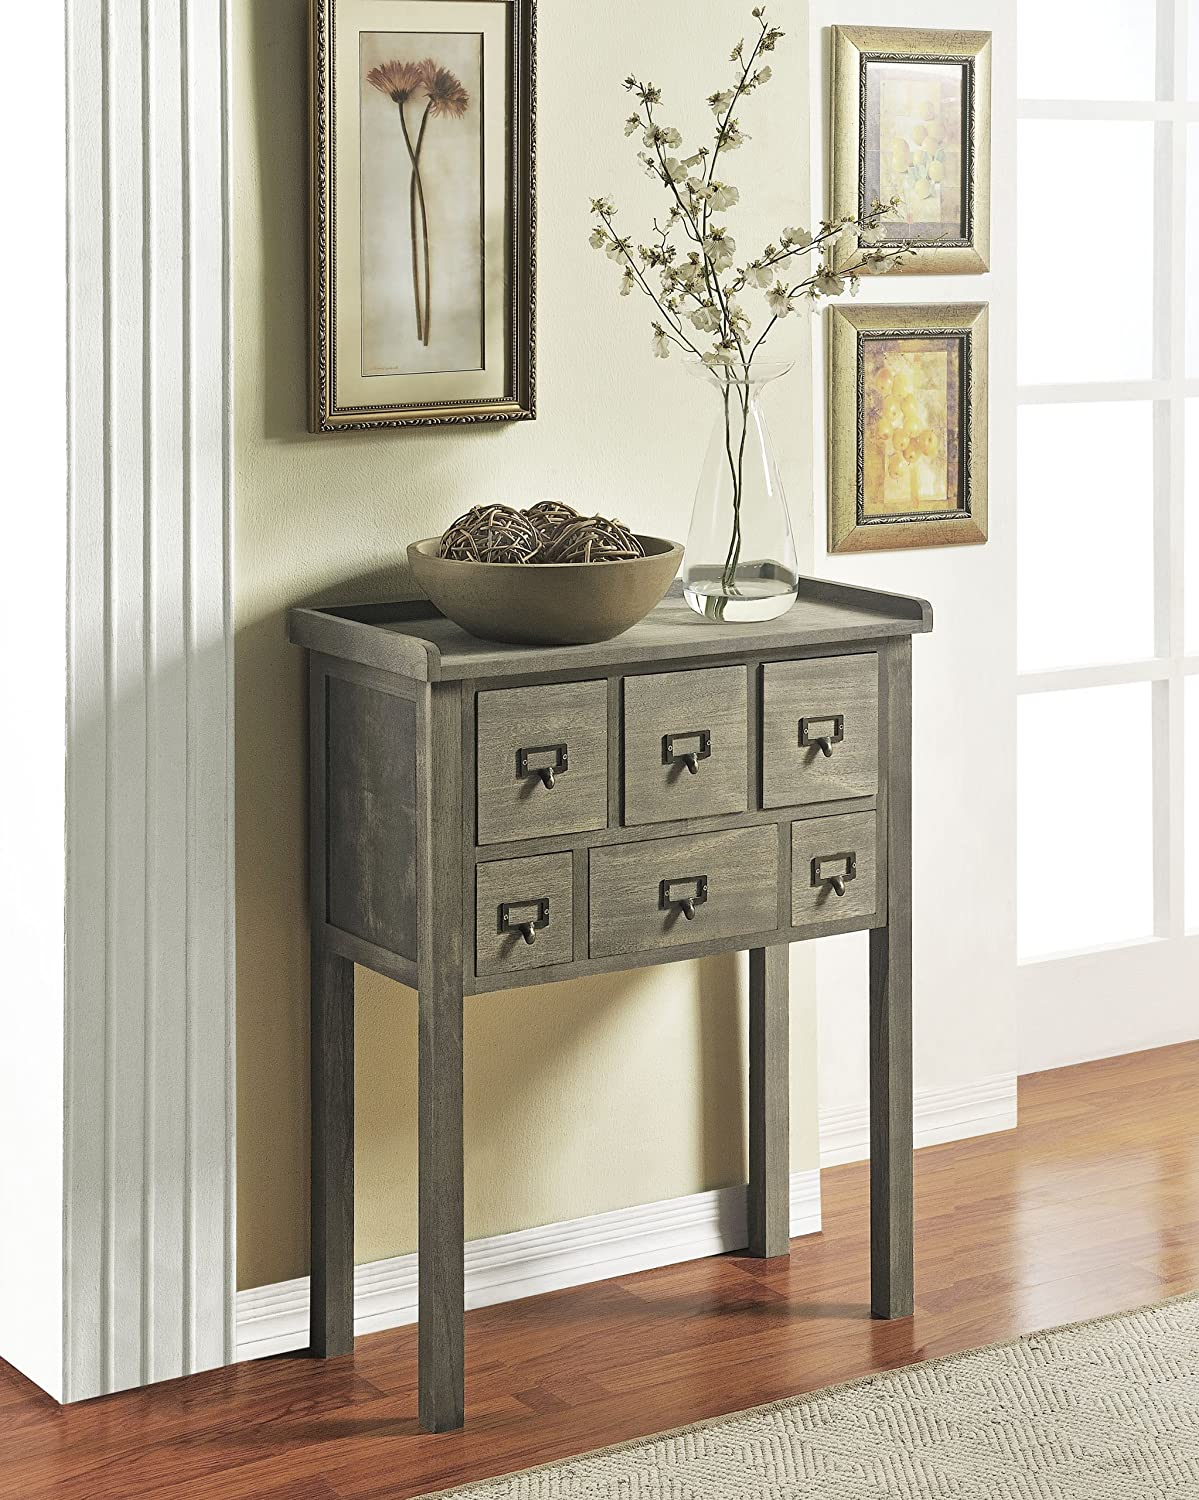 amazoncom altra furniture accent console table with 6 drawers kitchen dining amazoncom altra furniture ryder apothecary